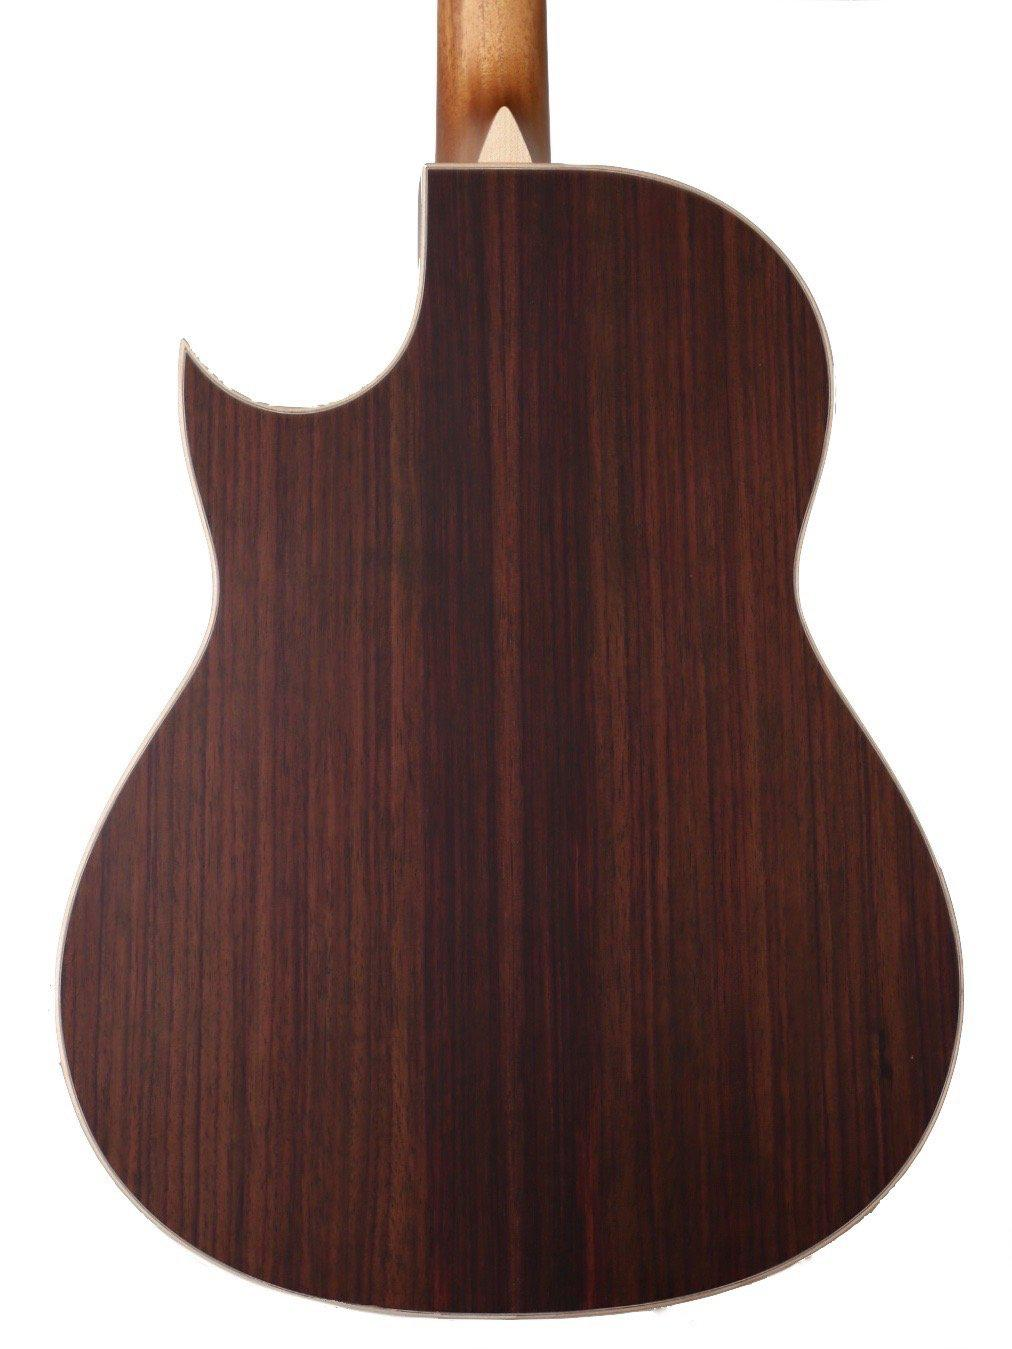 Larrivee Tommy Emmanuel  C-03R-TE #134741 with Anthem SL/Install - Larrivee Guitars - Heartbreaker Guitars